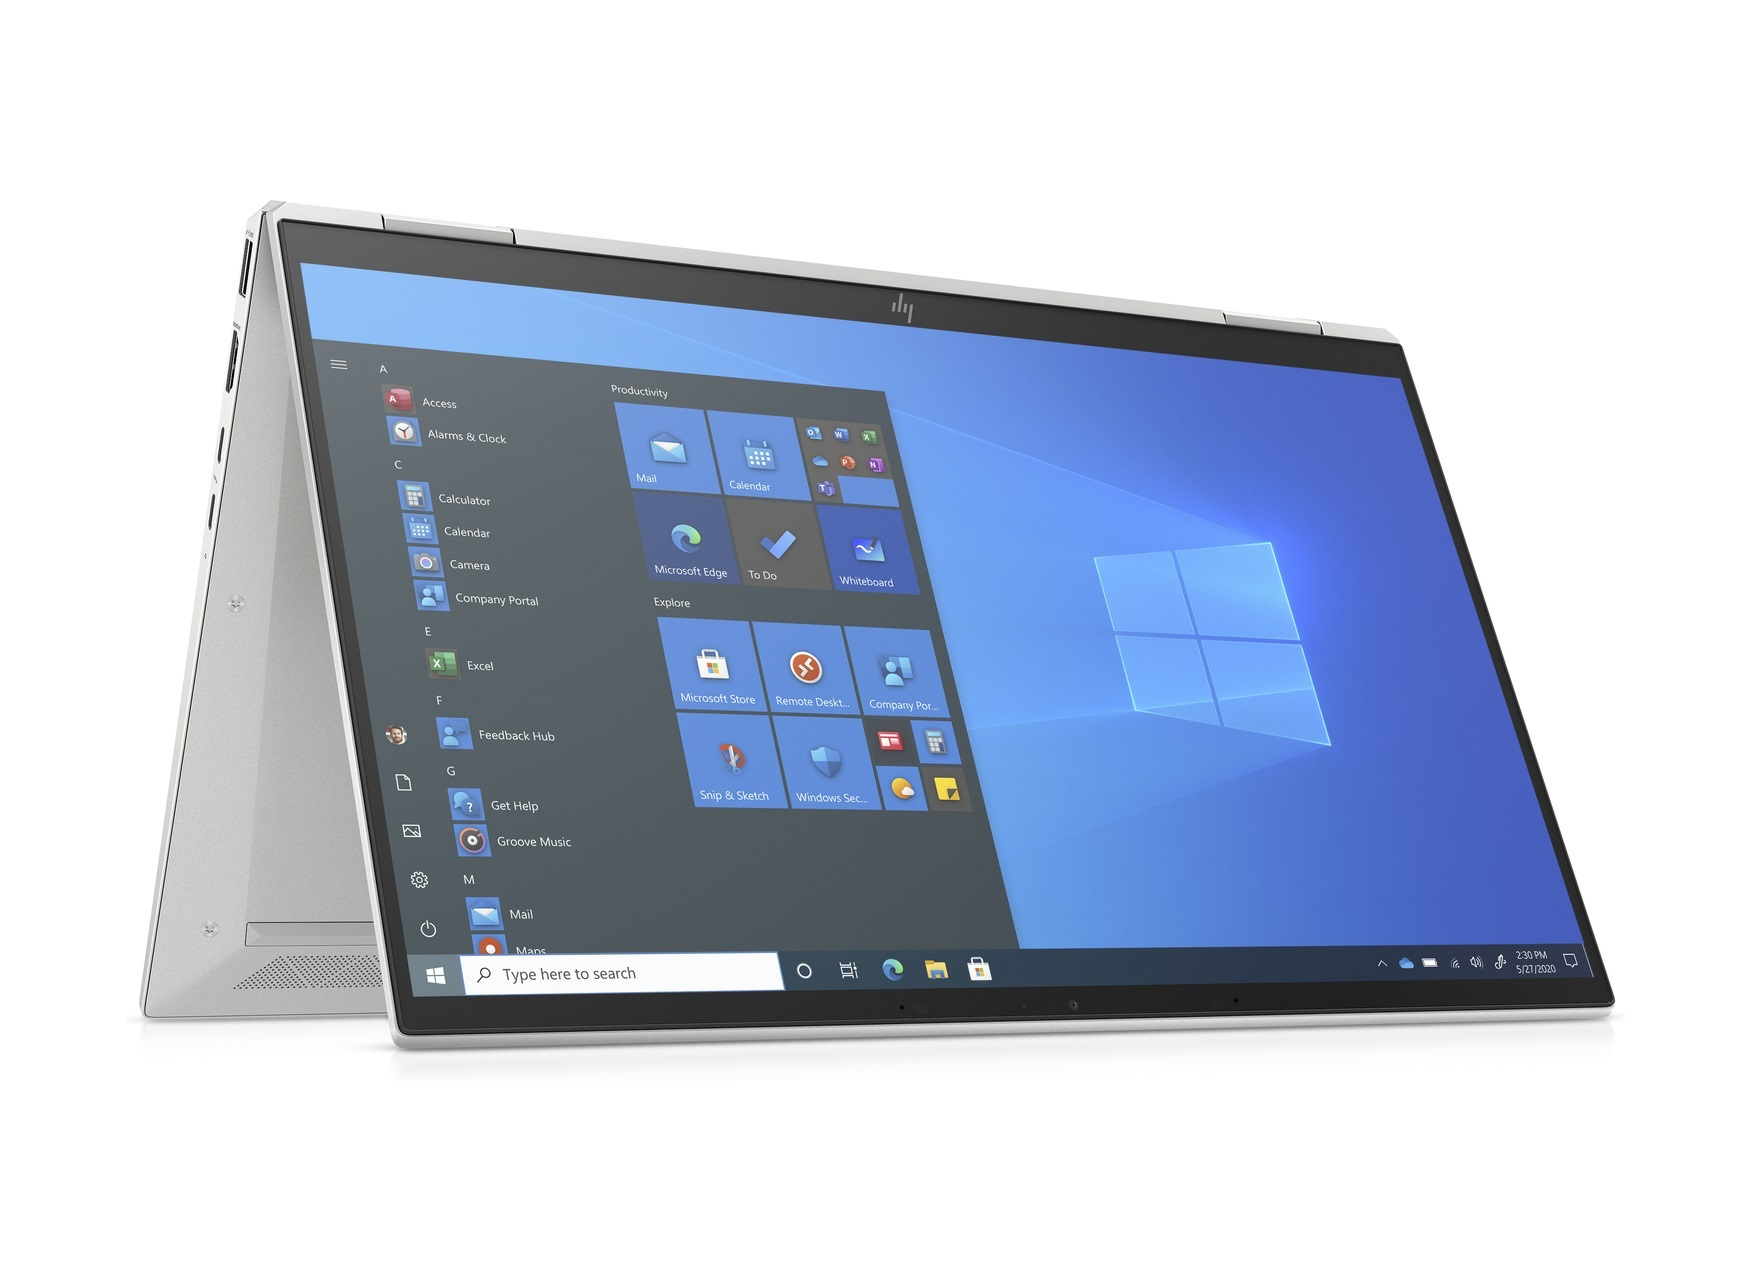 Laptop HP EliteBook X360 1040 G8 (3G1H4PA)/ Silver/ Intel Core i7-1165G7 (up to 4.70 Ghz, 12 MB)/ RAM 16GD4 DDR4/ 512GB SSD/14.0 inch FHD/ Intel Iris Xe Graphics/ PEN/ FP/ LED_KB/ Win 10 Pro / 3 Yrs